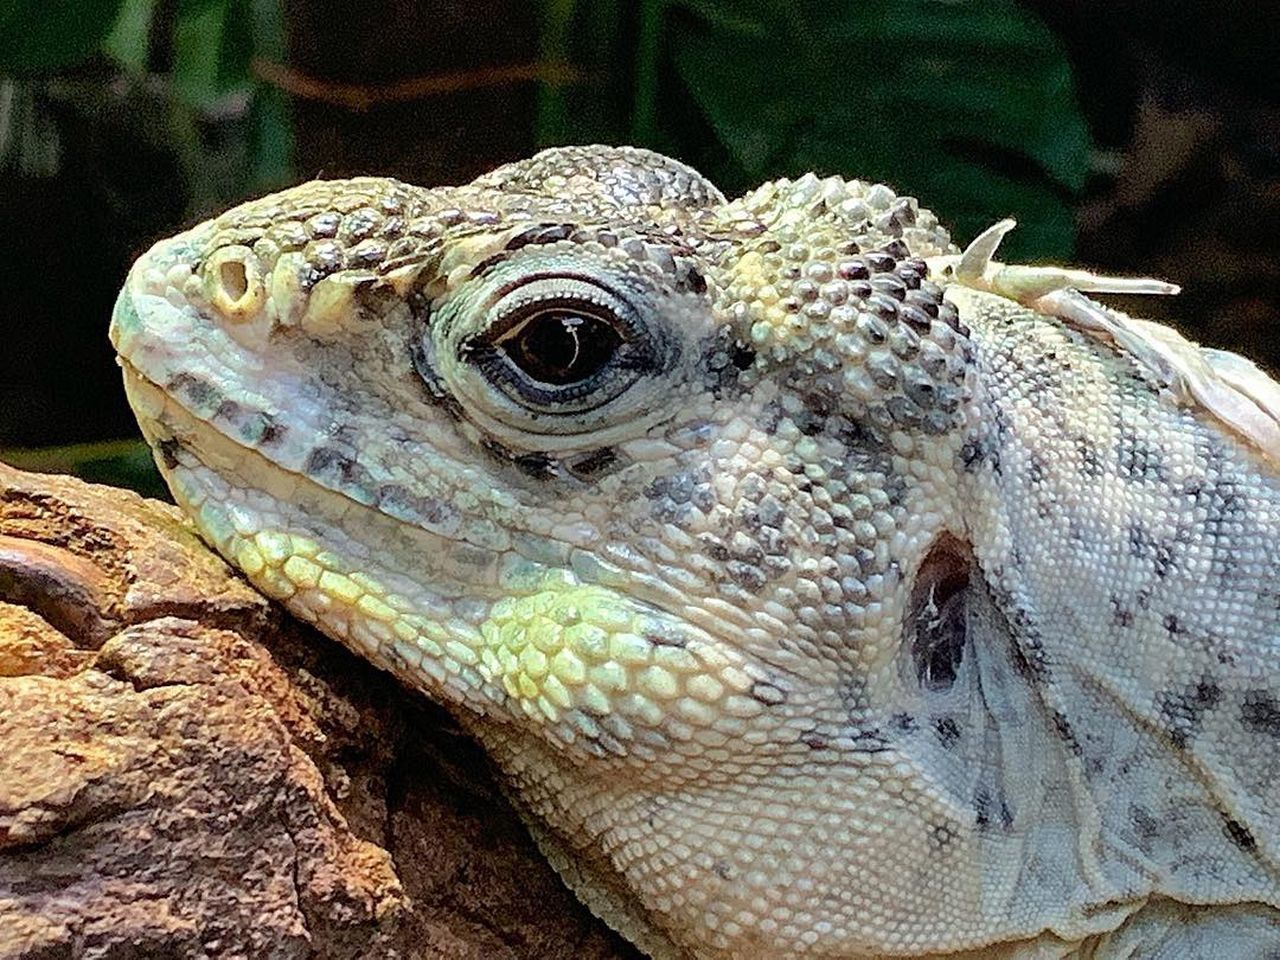 animal, animal themes, animal wildlife, one animal, animals in the wild, close-up, reptile, vertebrate, lizard, focus on foreground, no people, animal body part, bearded dragon, animal head, day, nature, natural pattern, outdoors, animal scale, animal eye